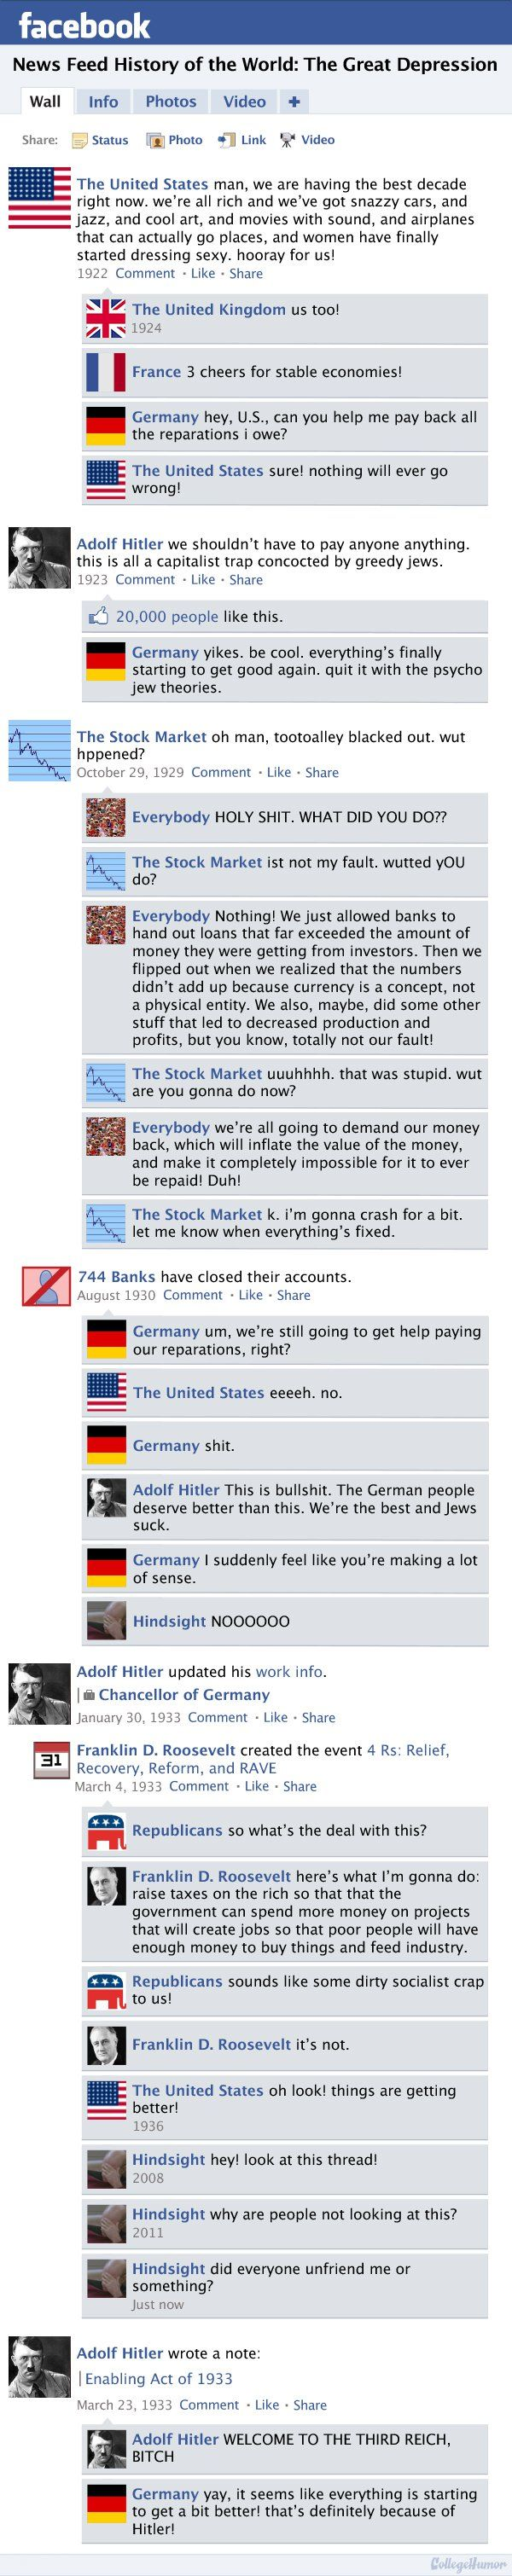 Facebook News Feed History of the World: World War I to World War II (Page 2) - CollegeHumor Post